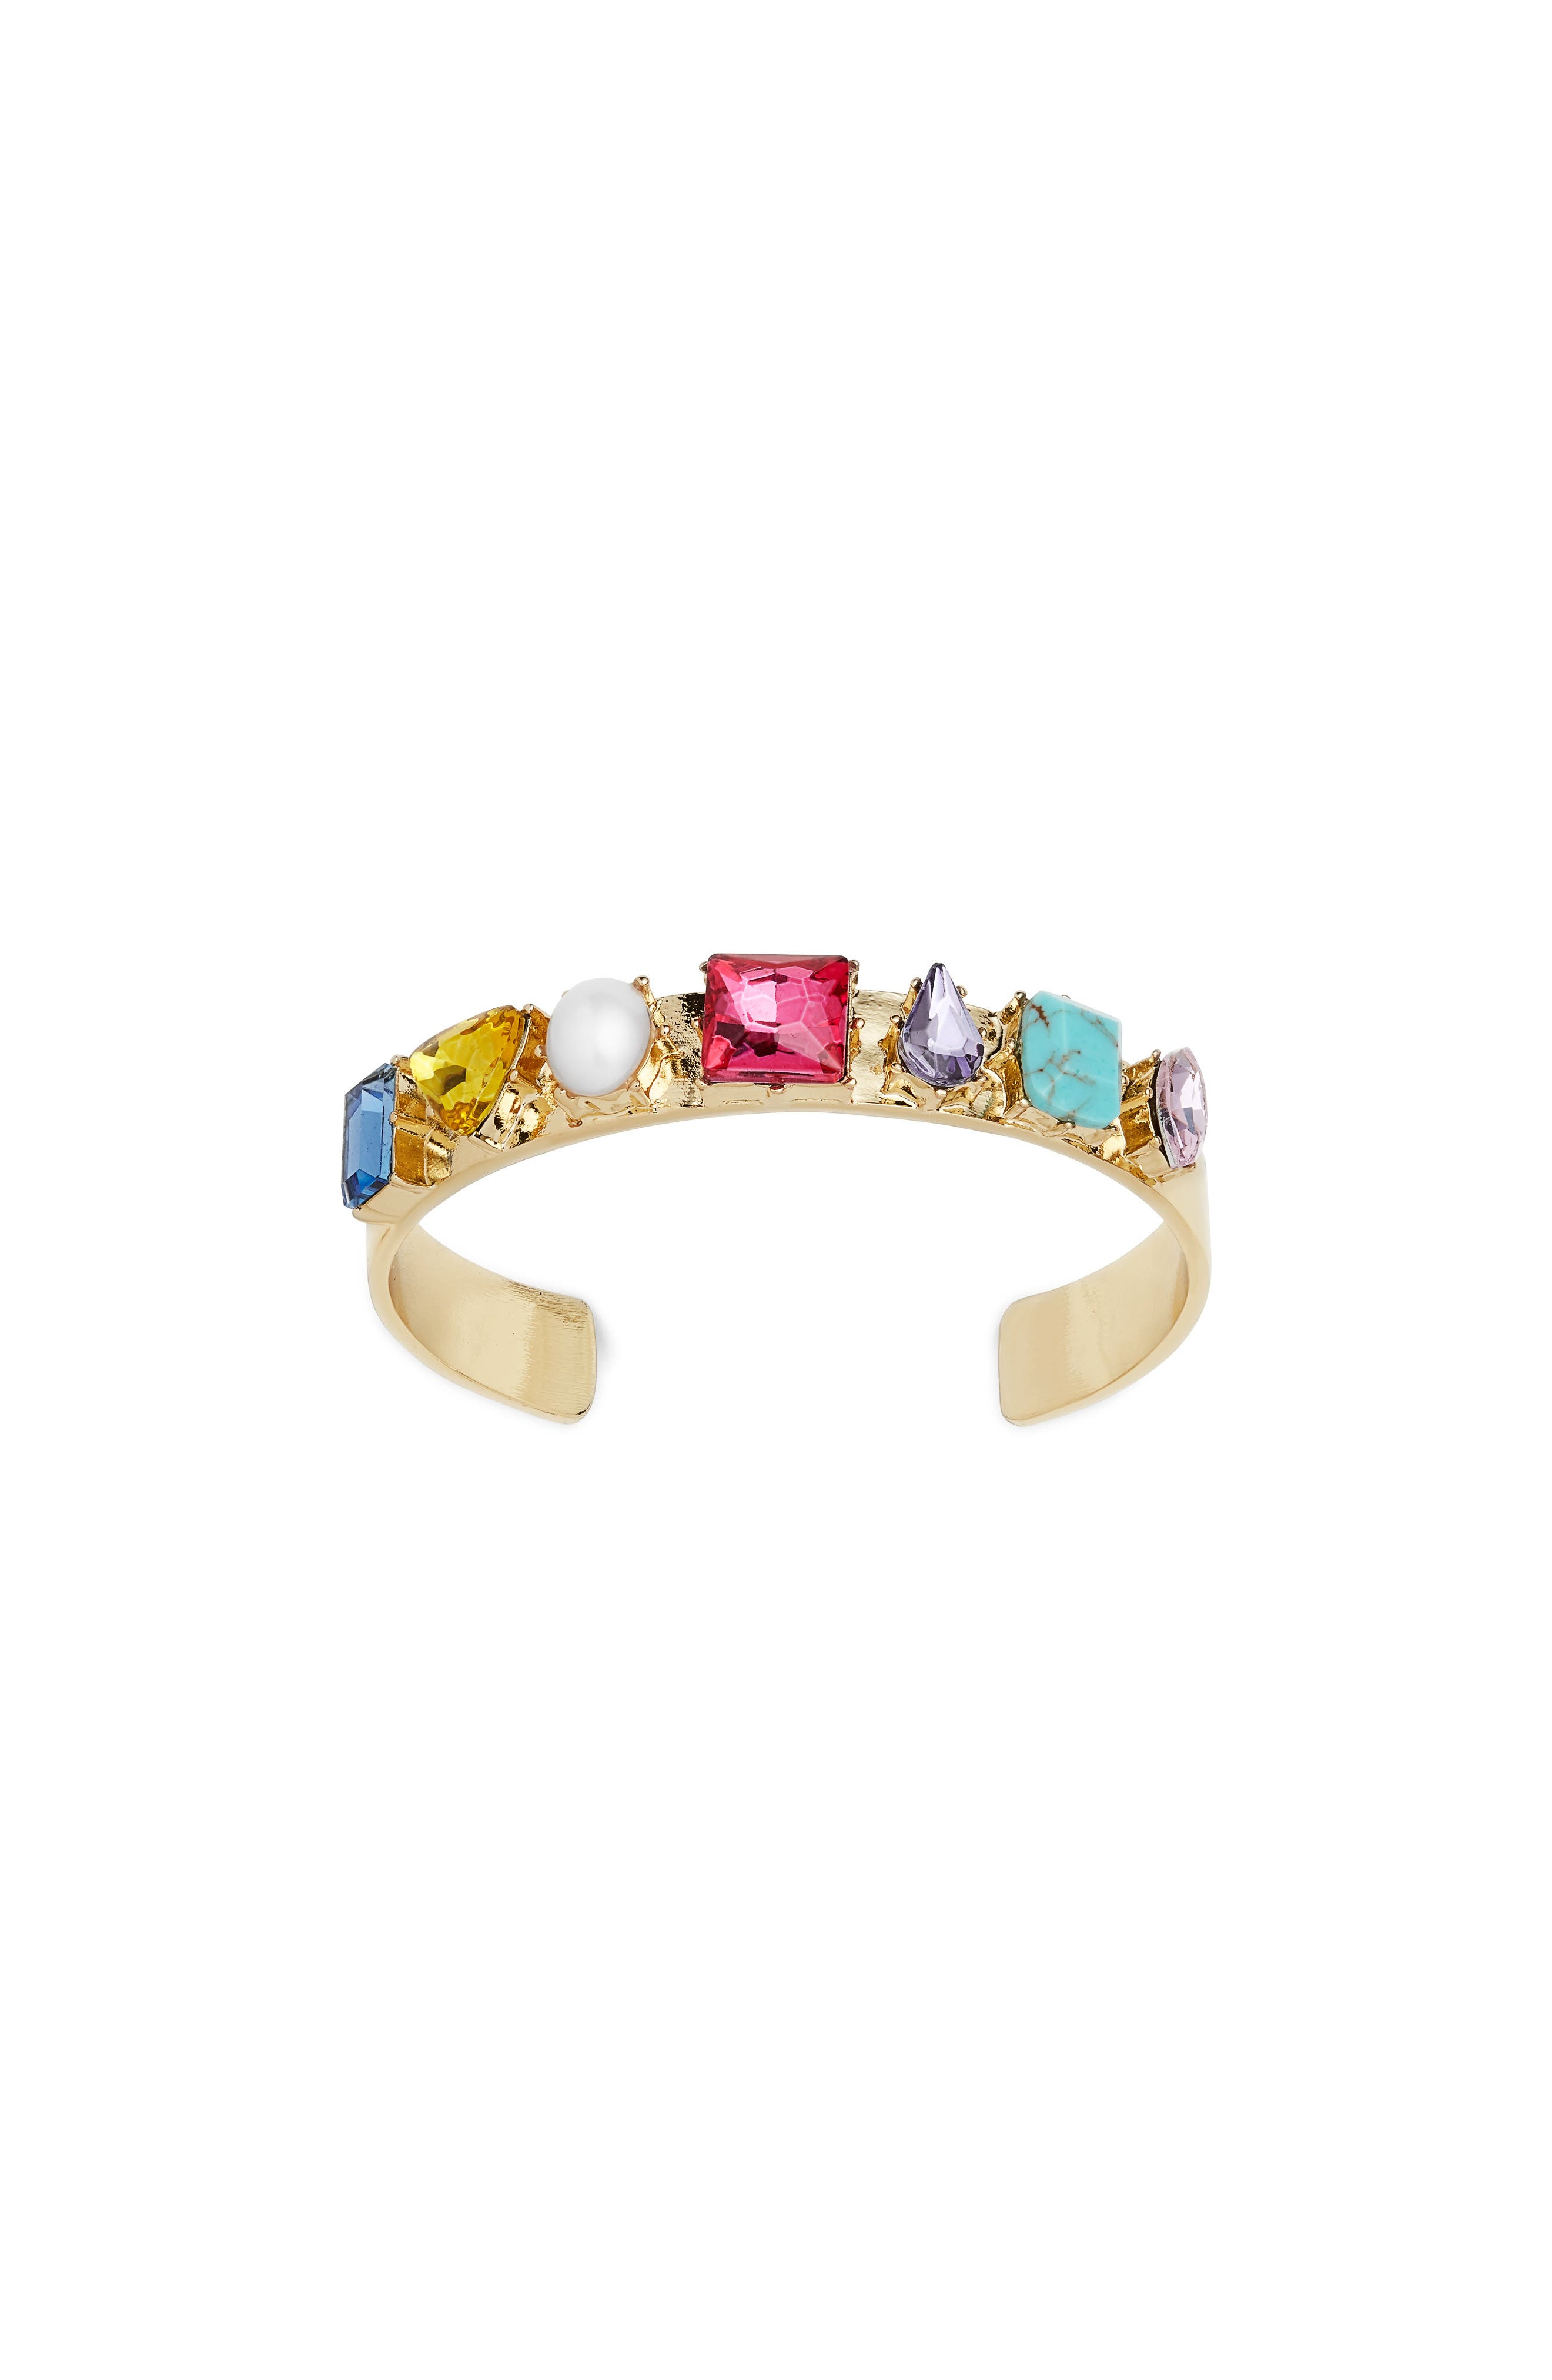 x Micaela Erlanger She's with the Band Cuff,                             Main thumbnail 1, color,                             MULTI/ GOLD